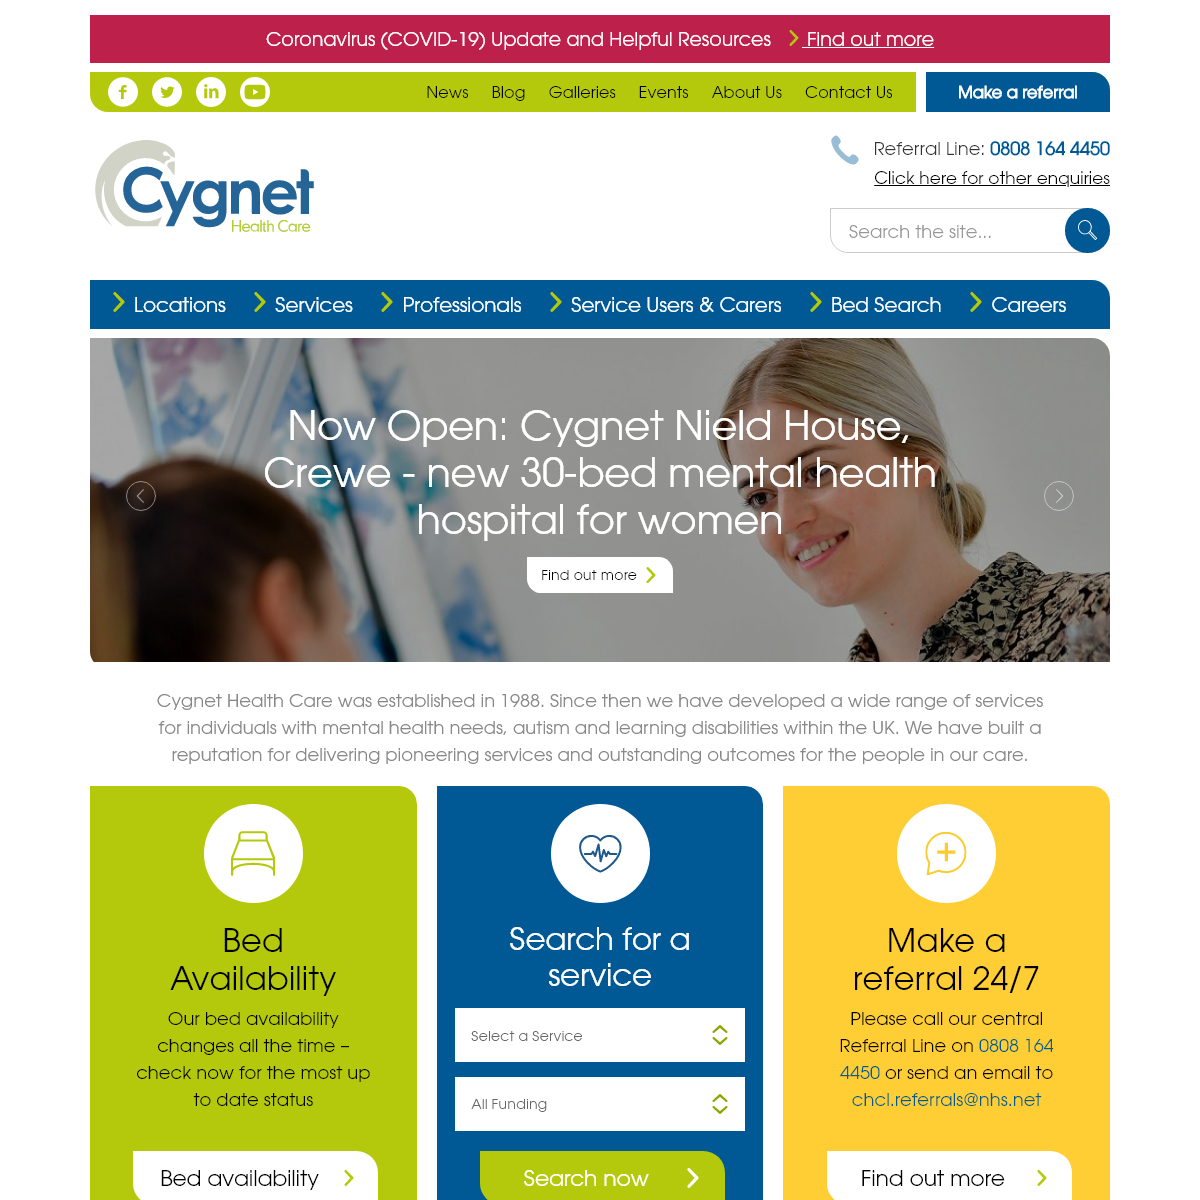 Cygnet Health Care - A leading provider of mental health, autism and learning disability services